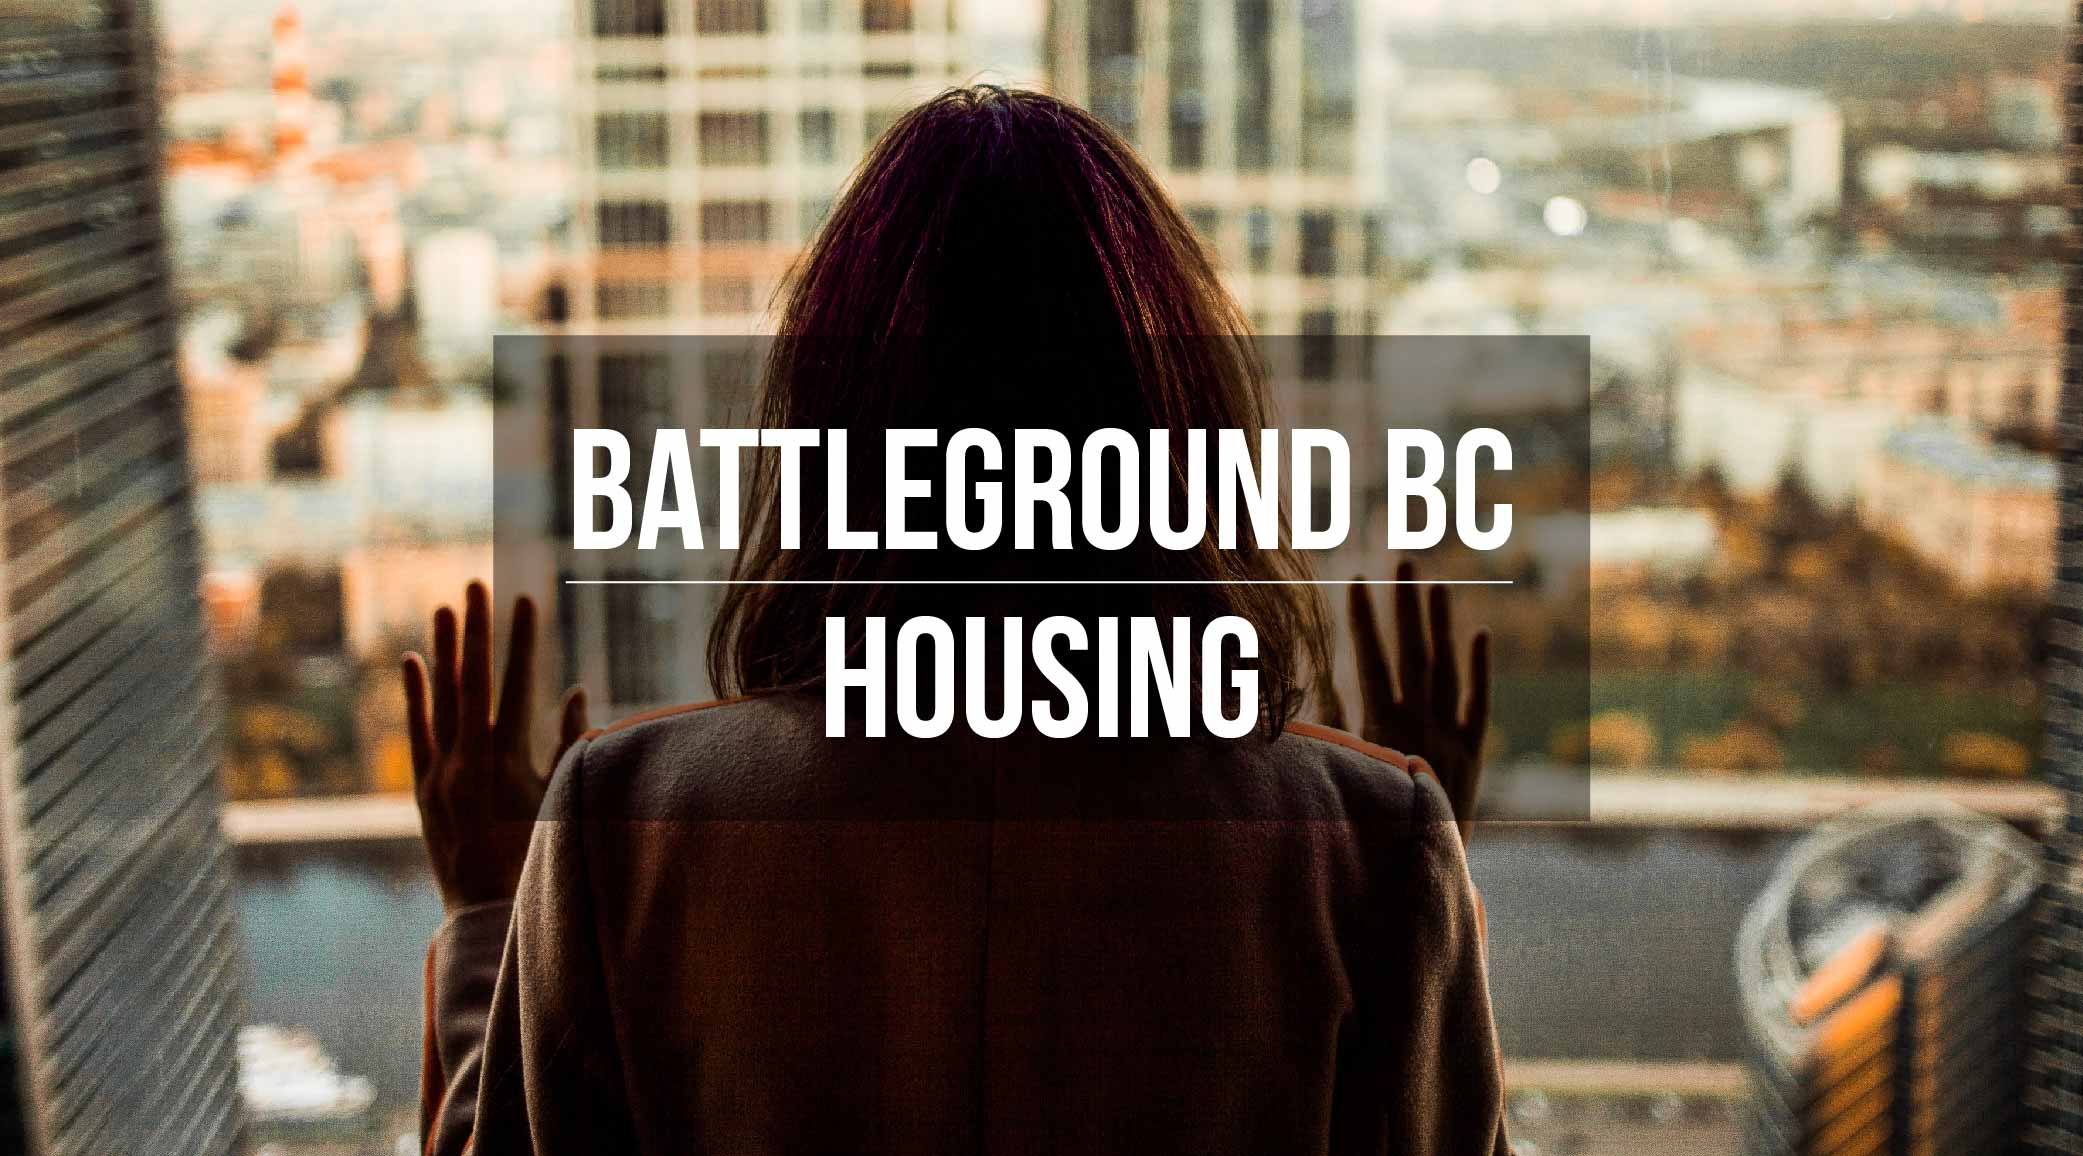 Bc election housing v2 01